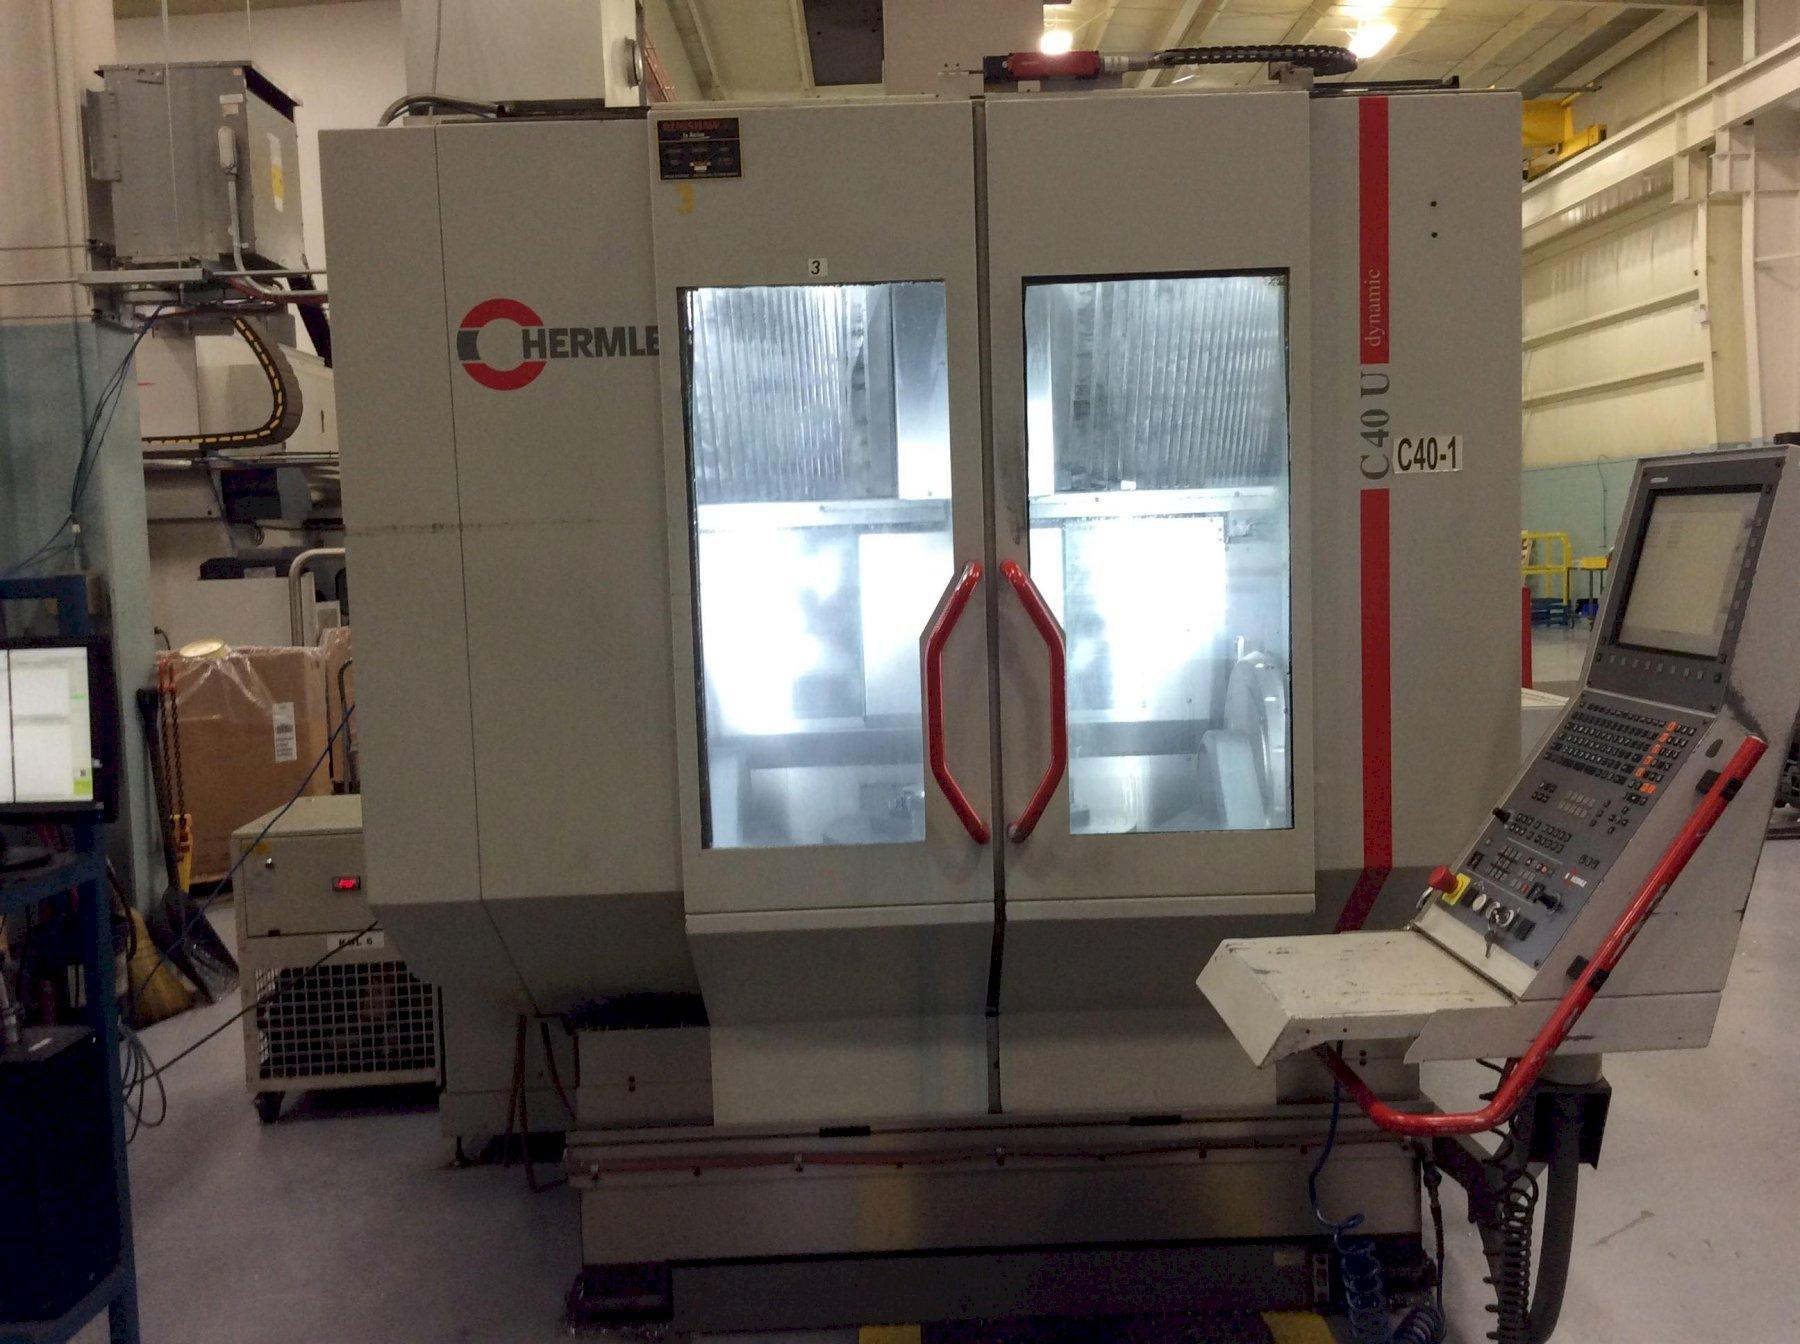 "Hermle C-40U 5-Axis CNC Vertical Machining Center, Heidenhain, 29.5"" Dia Table, 31.5""/31.5""/19.6"" Travels, 18K Spindle, 38 ATC, CTS, Chiller, HSK-63, 2006"